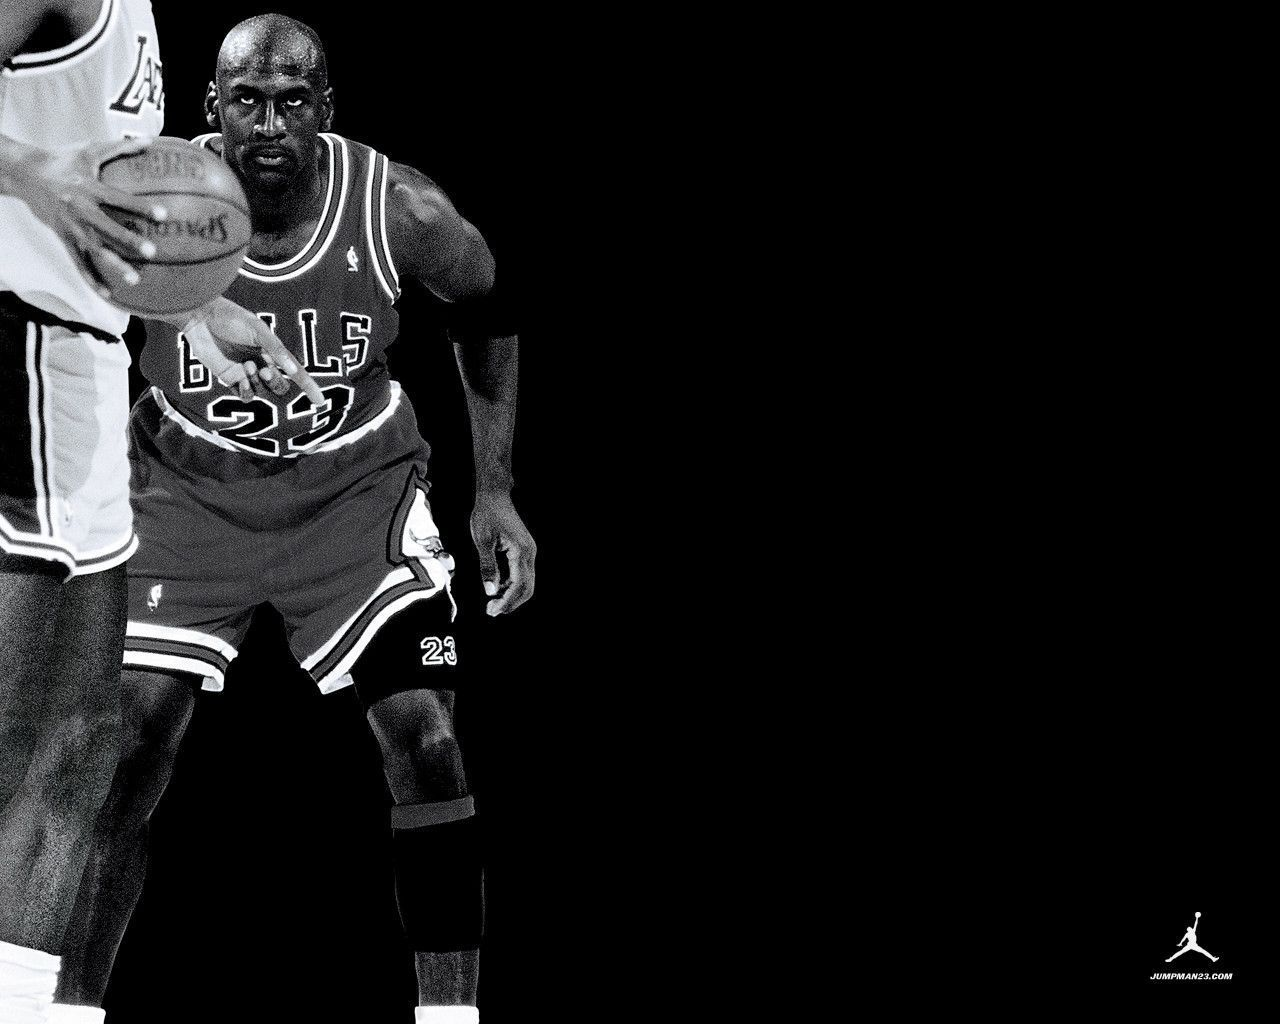 Michael Jordan Black And White Wallpaper For Iphone  bRM  f50779046